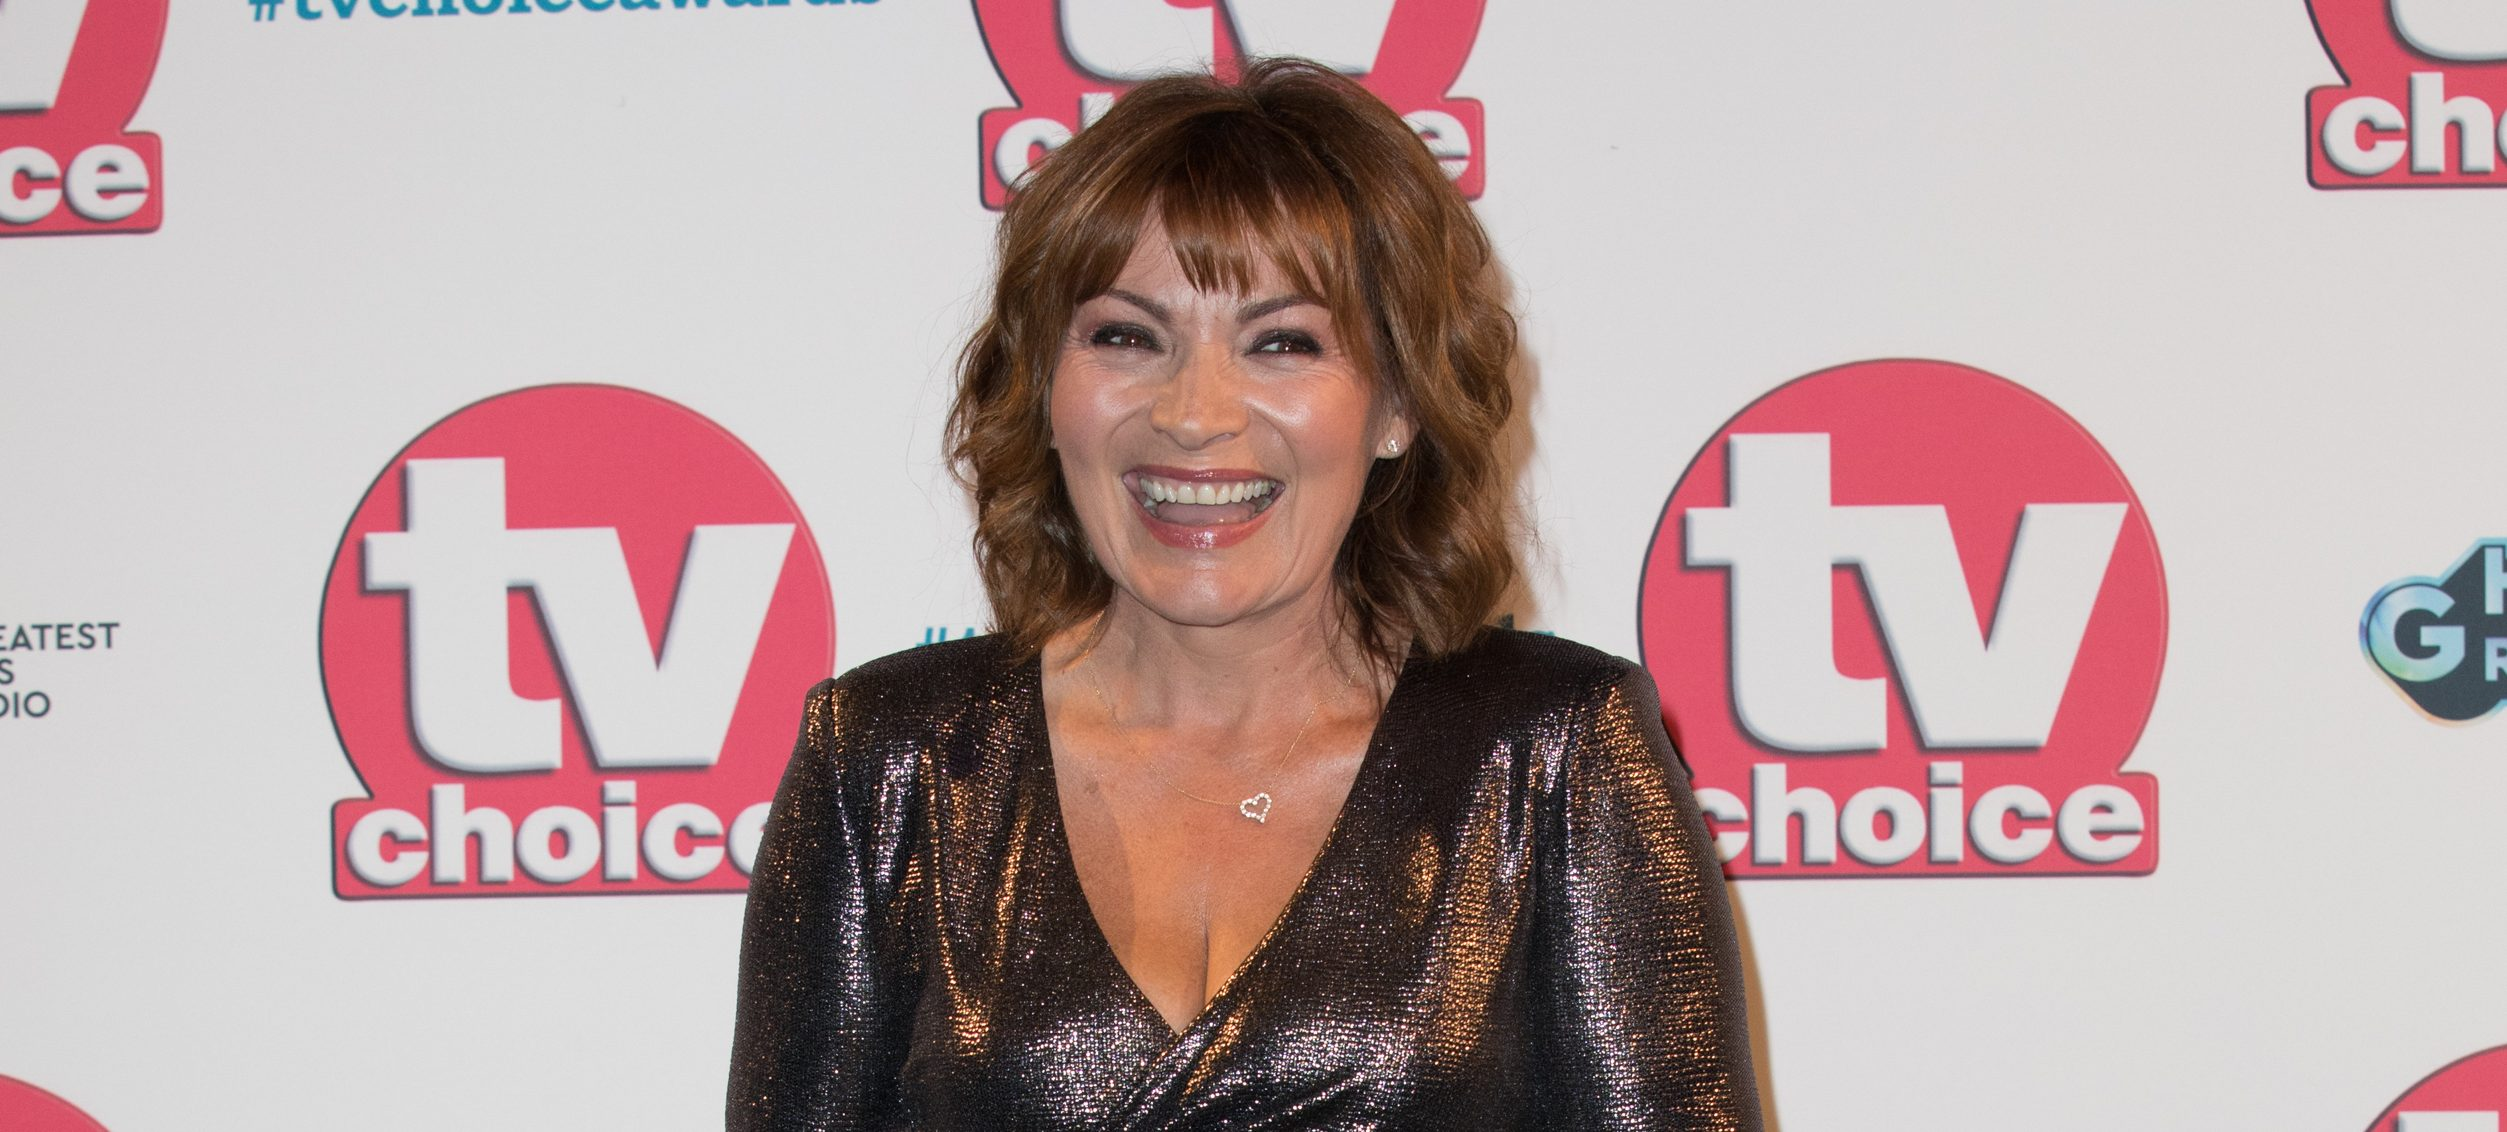 Lorraine Kelly hits out at social media trolls in TV Choice Awards speech